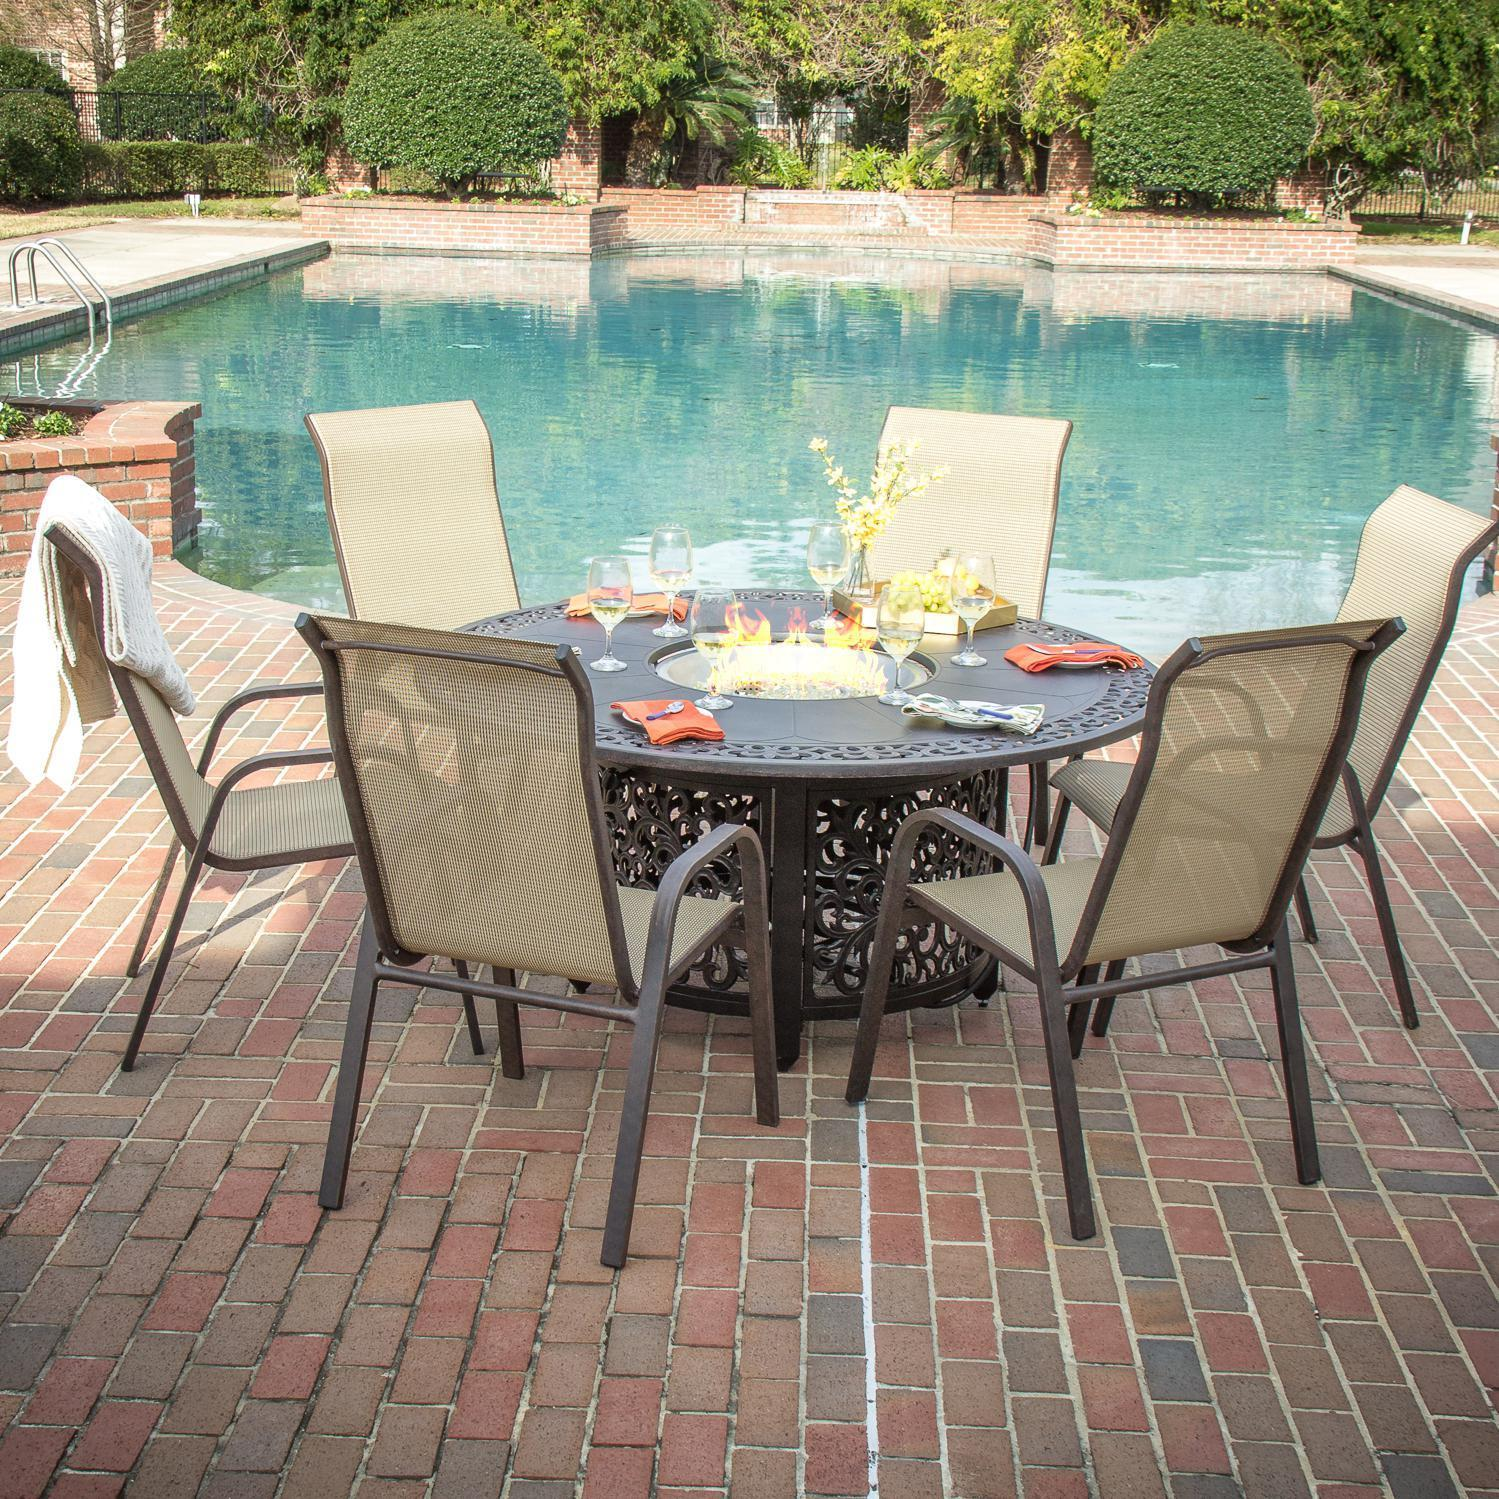 Lakeview Outdoor Designs Madison Bay 6 Person Sling Patio Dining Set With Fire Pit Table Free Shipping Today 10277035